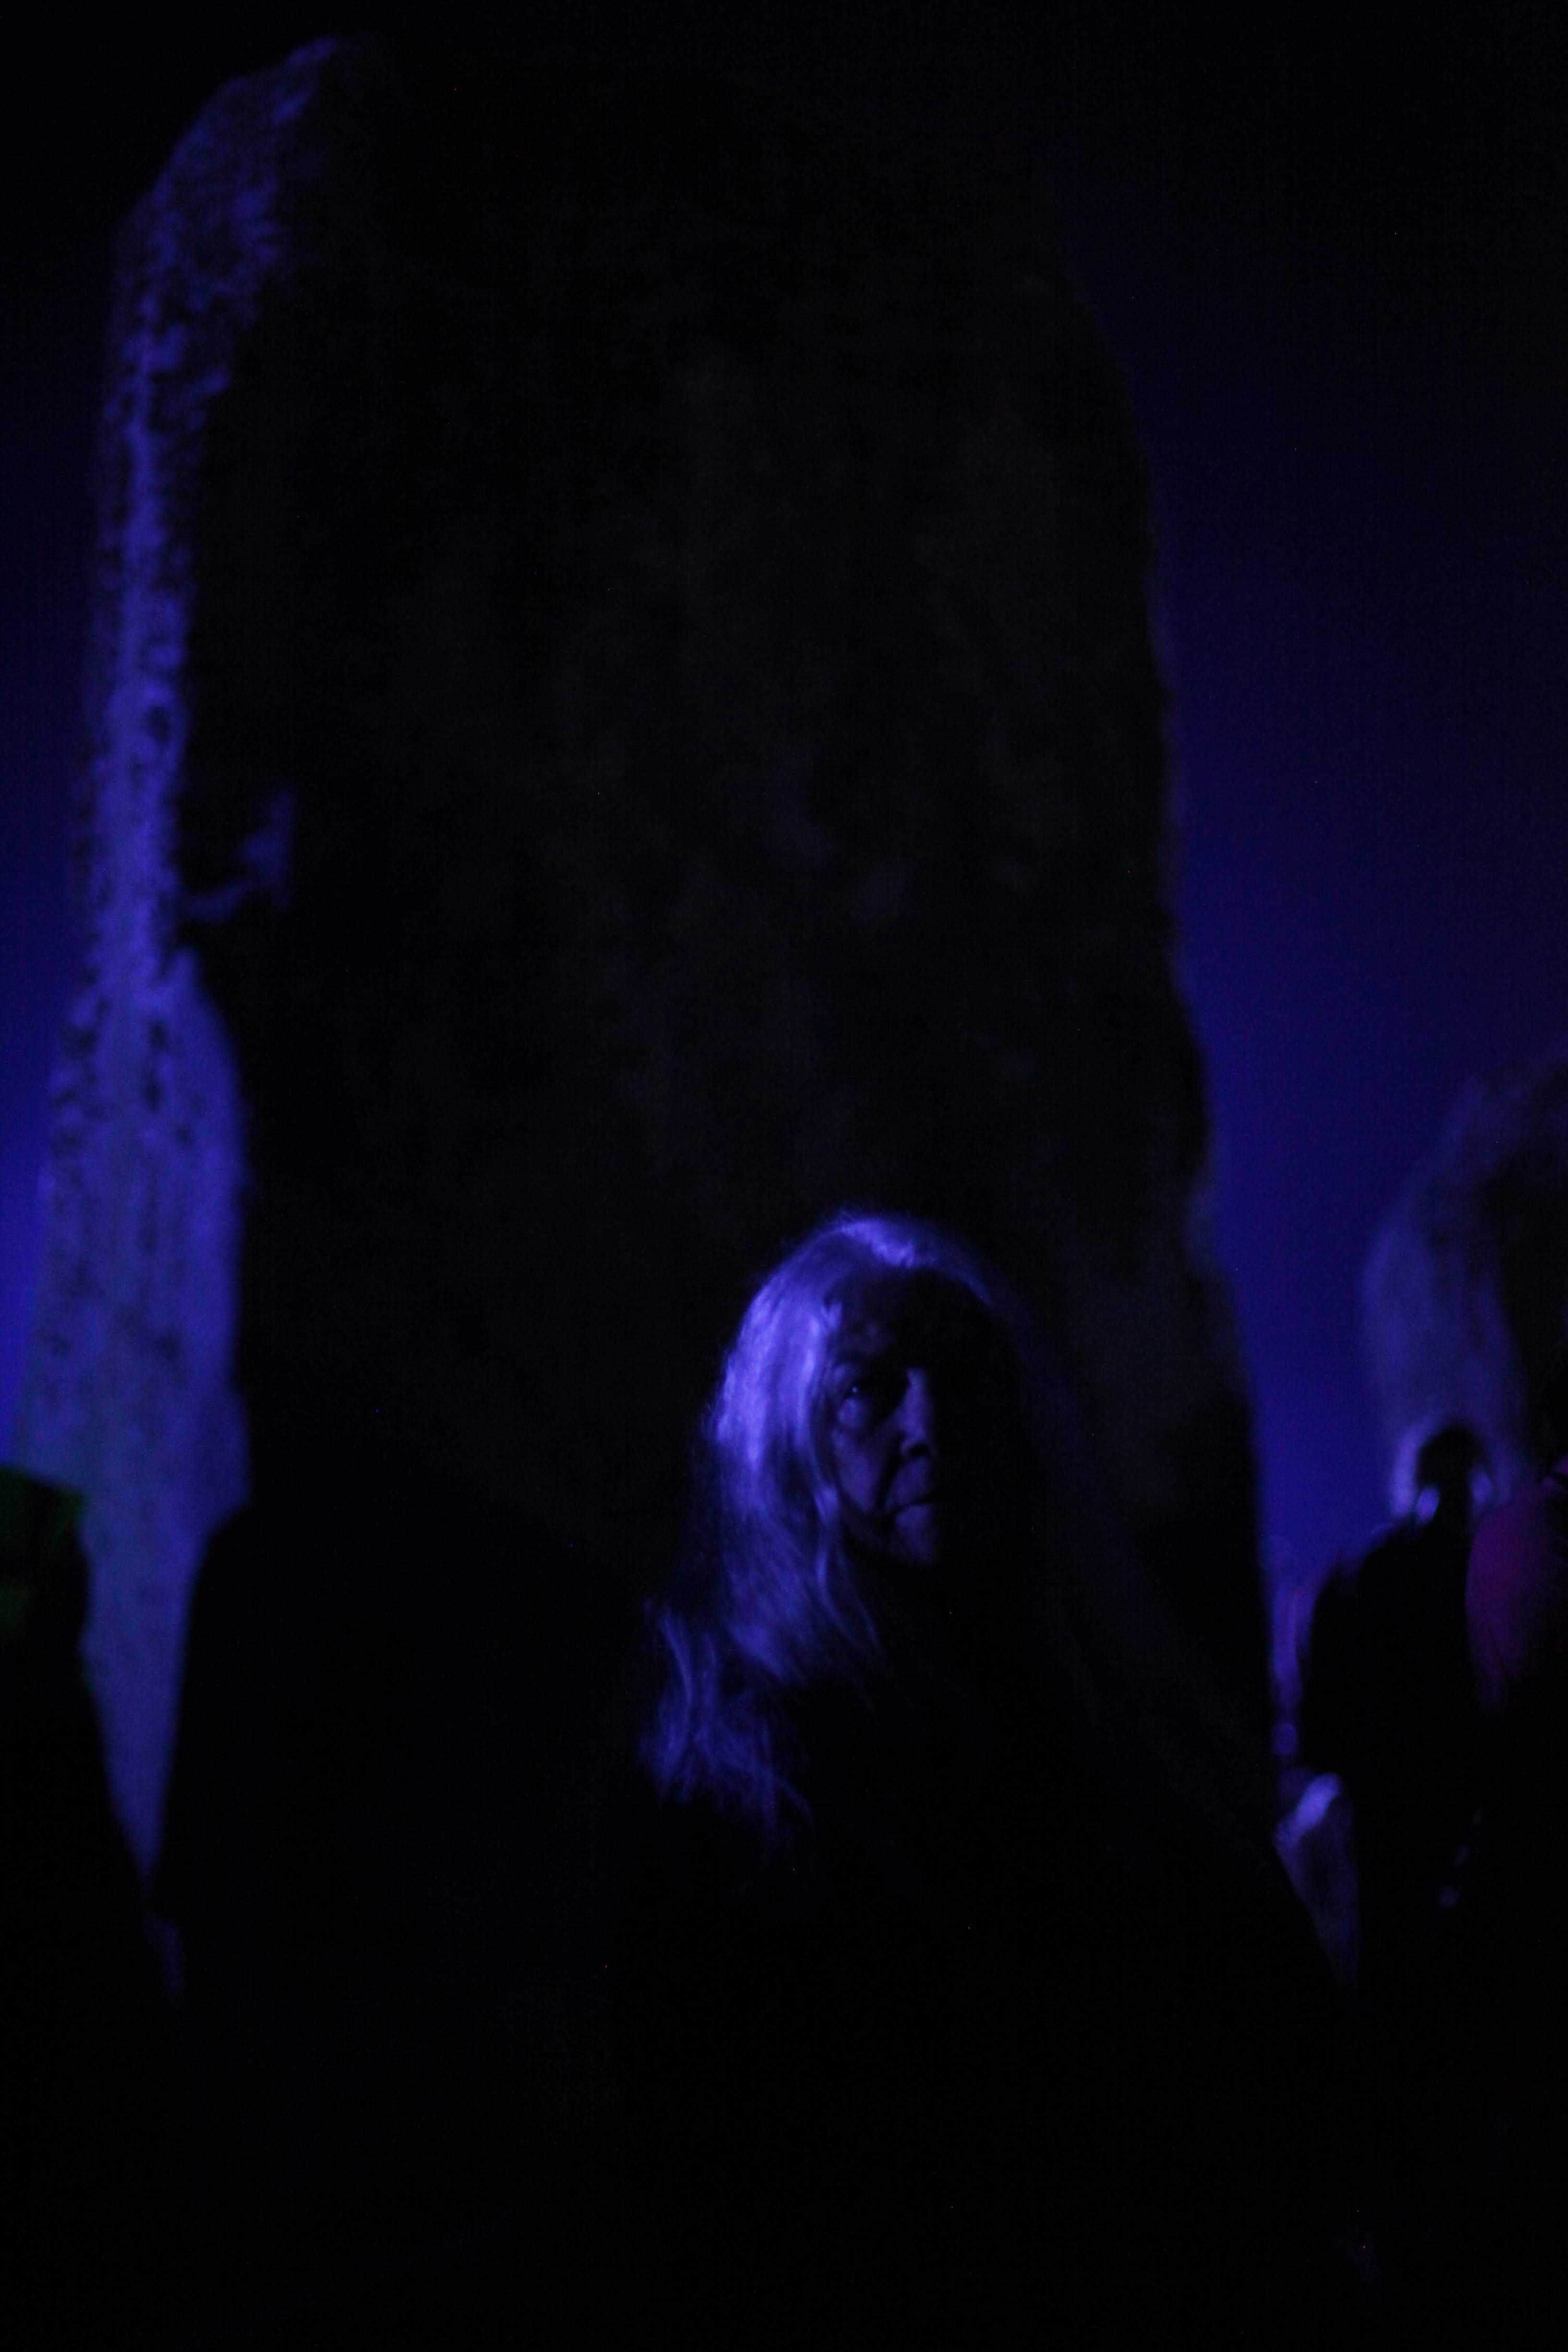 ana paganini stonehenge Summer and Winter Solstices the south west collective of photography women stood under blue light